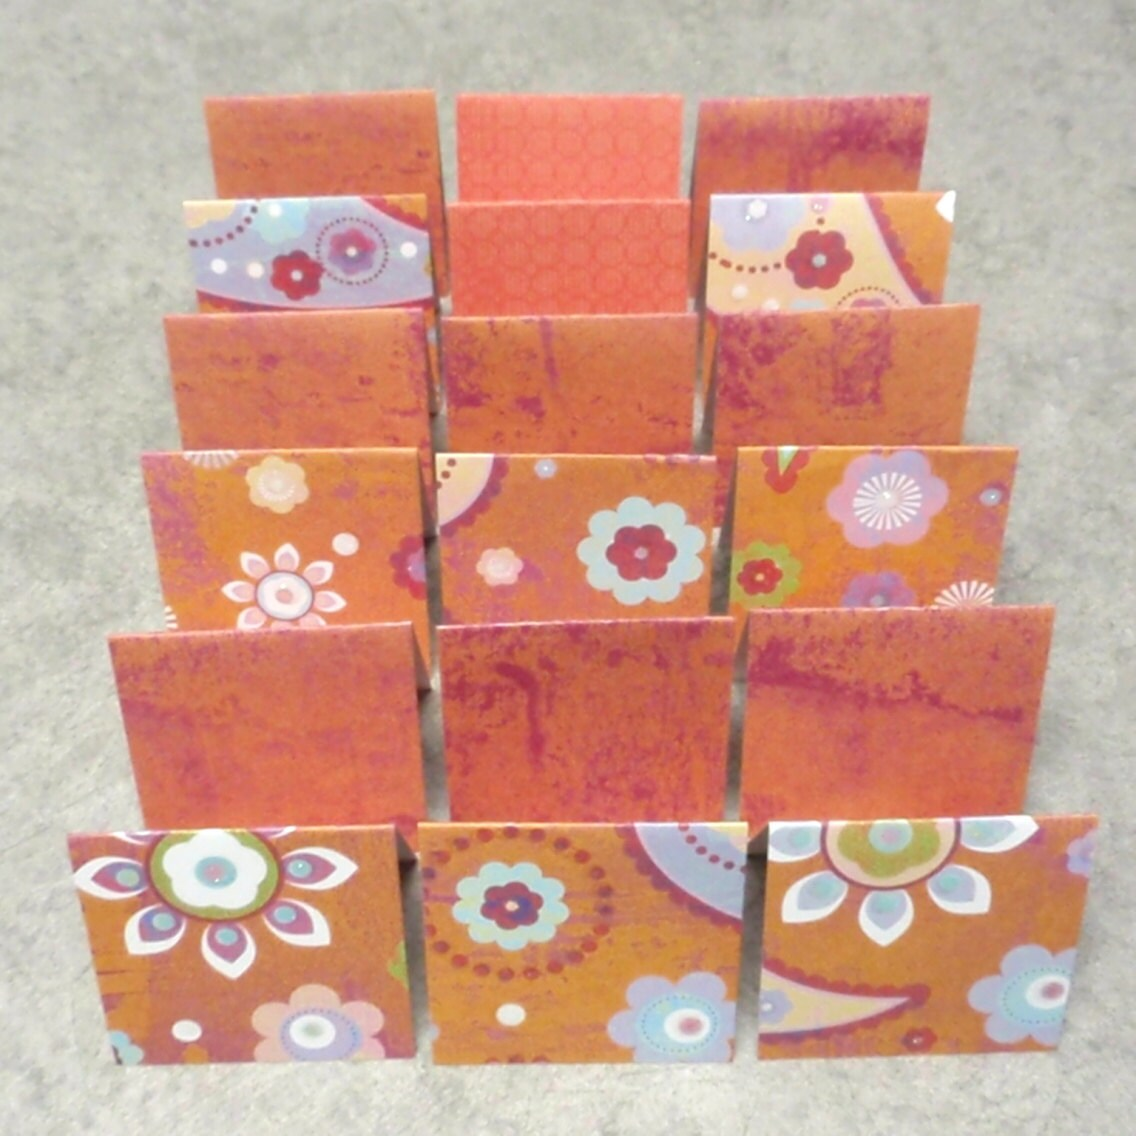 18 Mini Cards - blank for thank you notes - orange purple floral - ksewingbasket